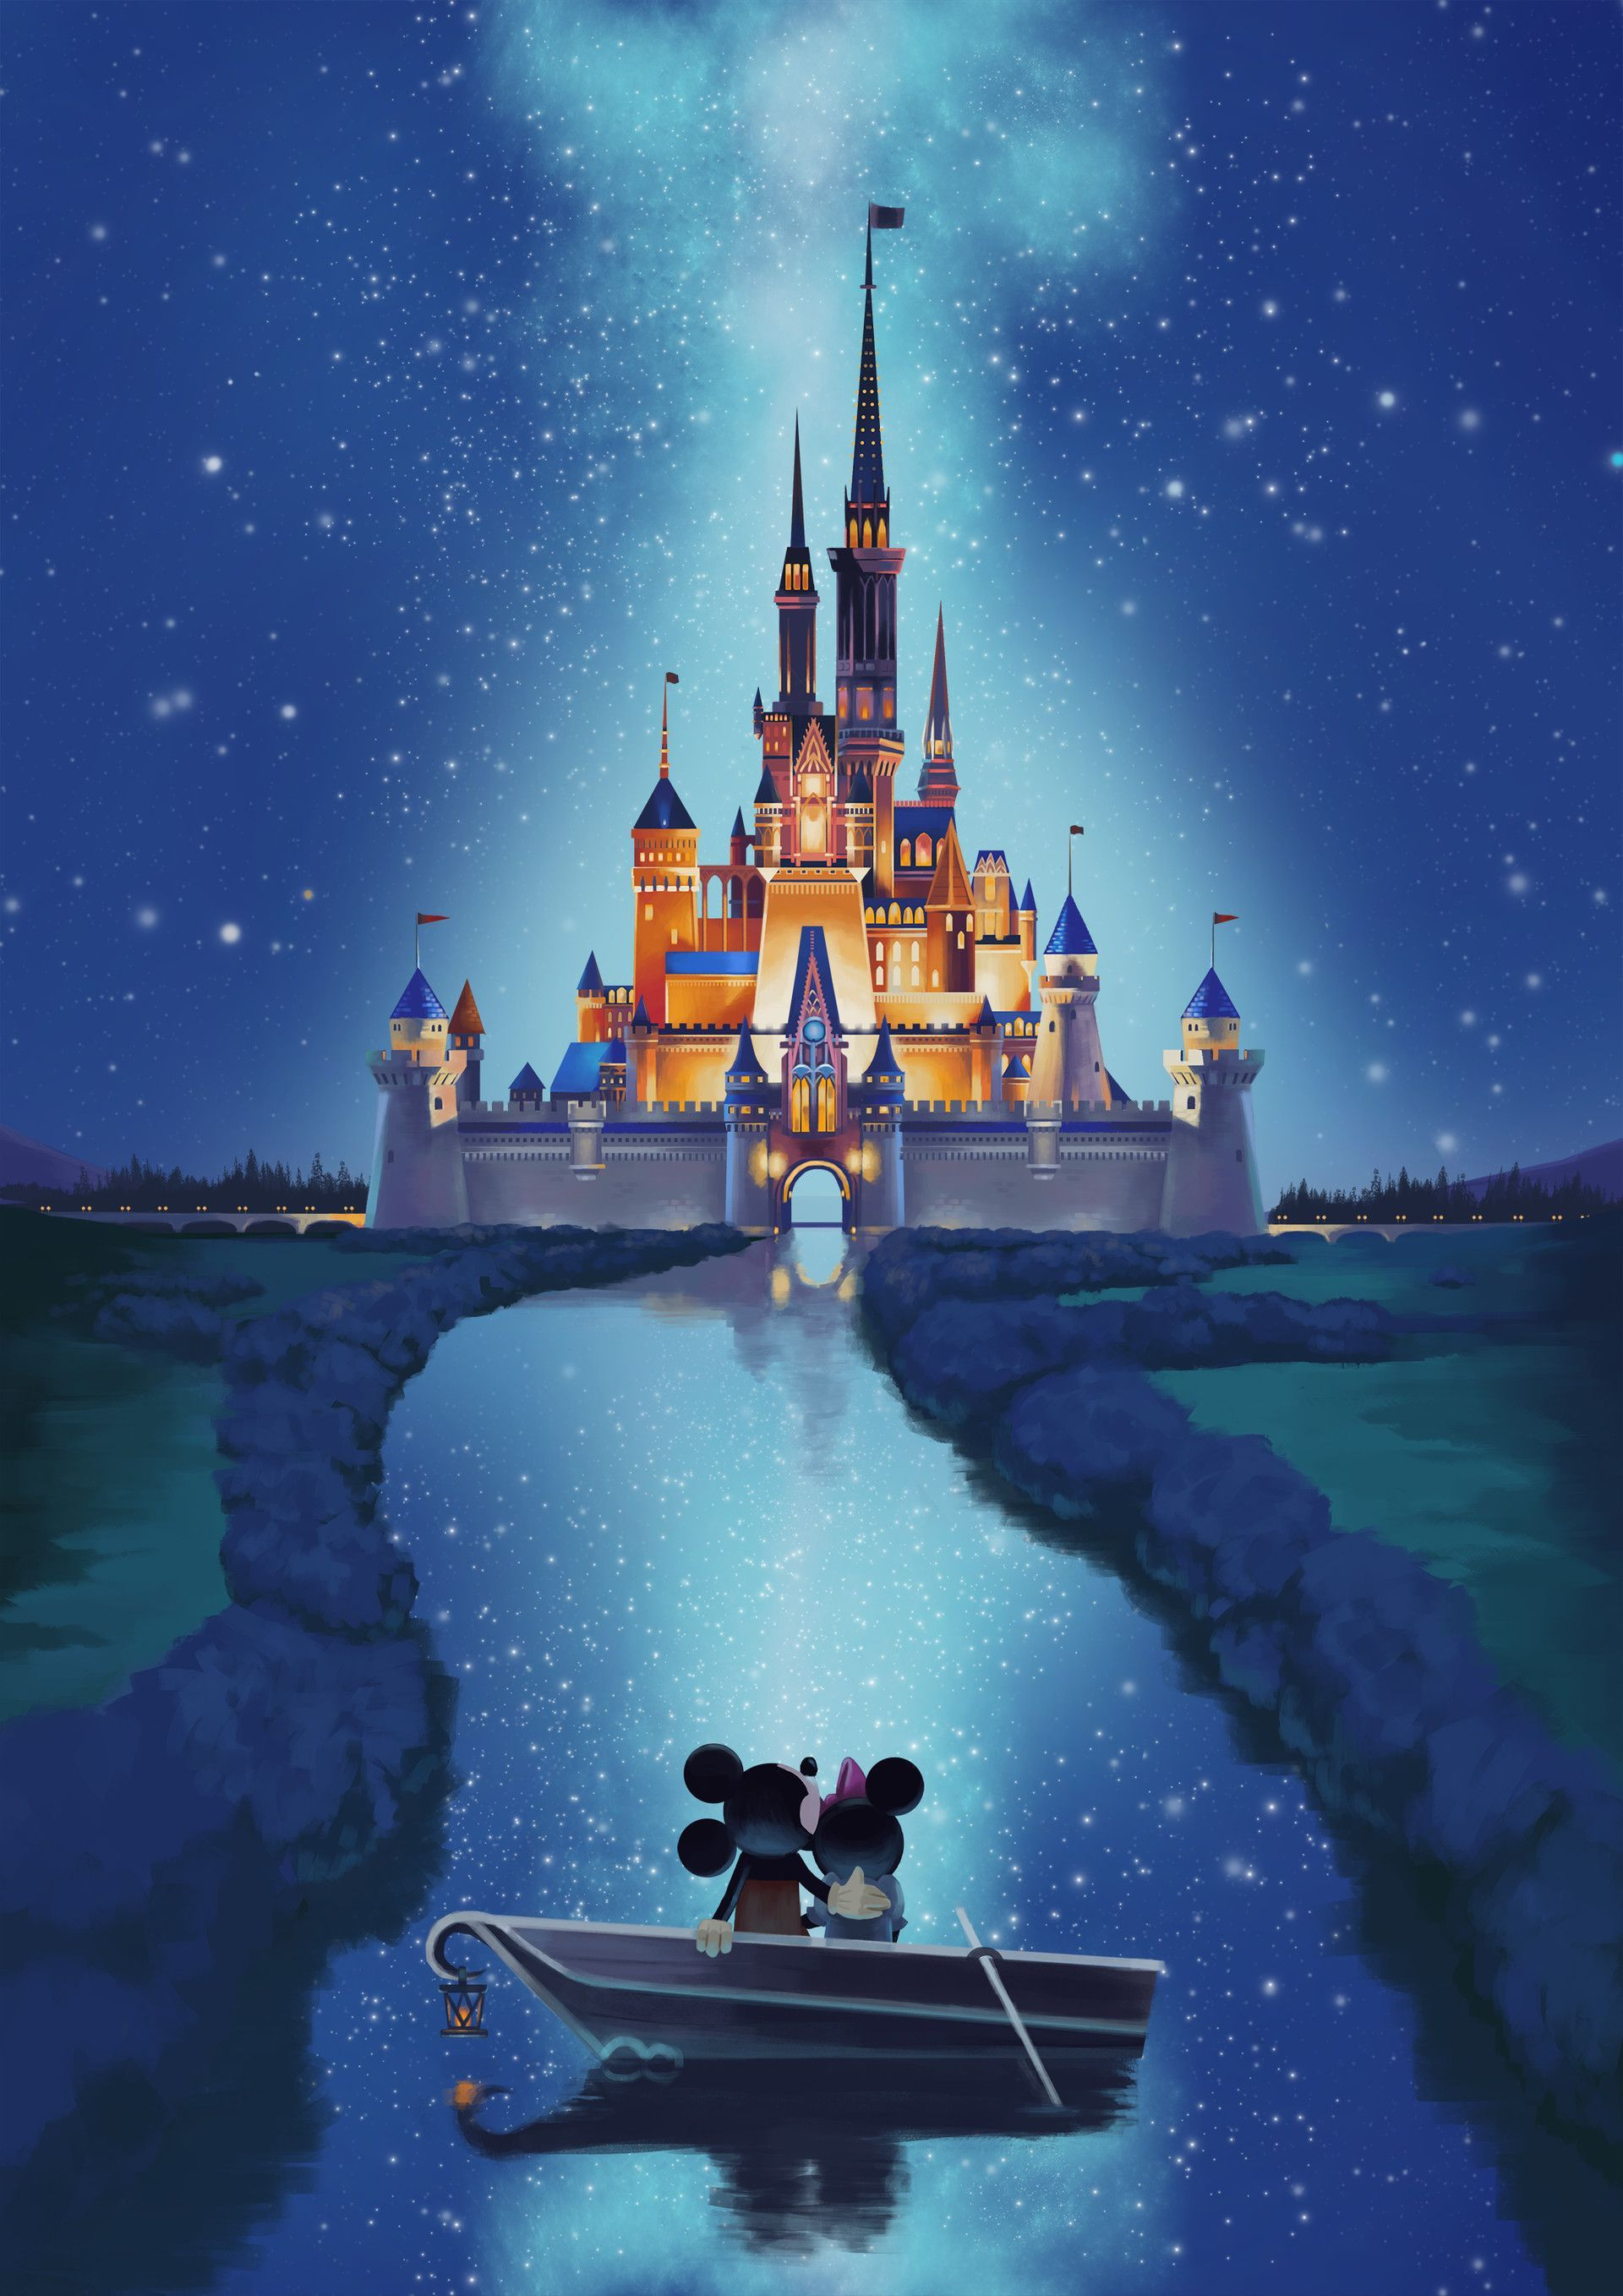 Disney Castle Iphone Wallpaper Posted By Zoey Sellers